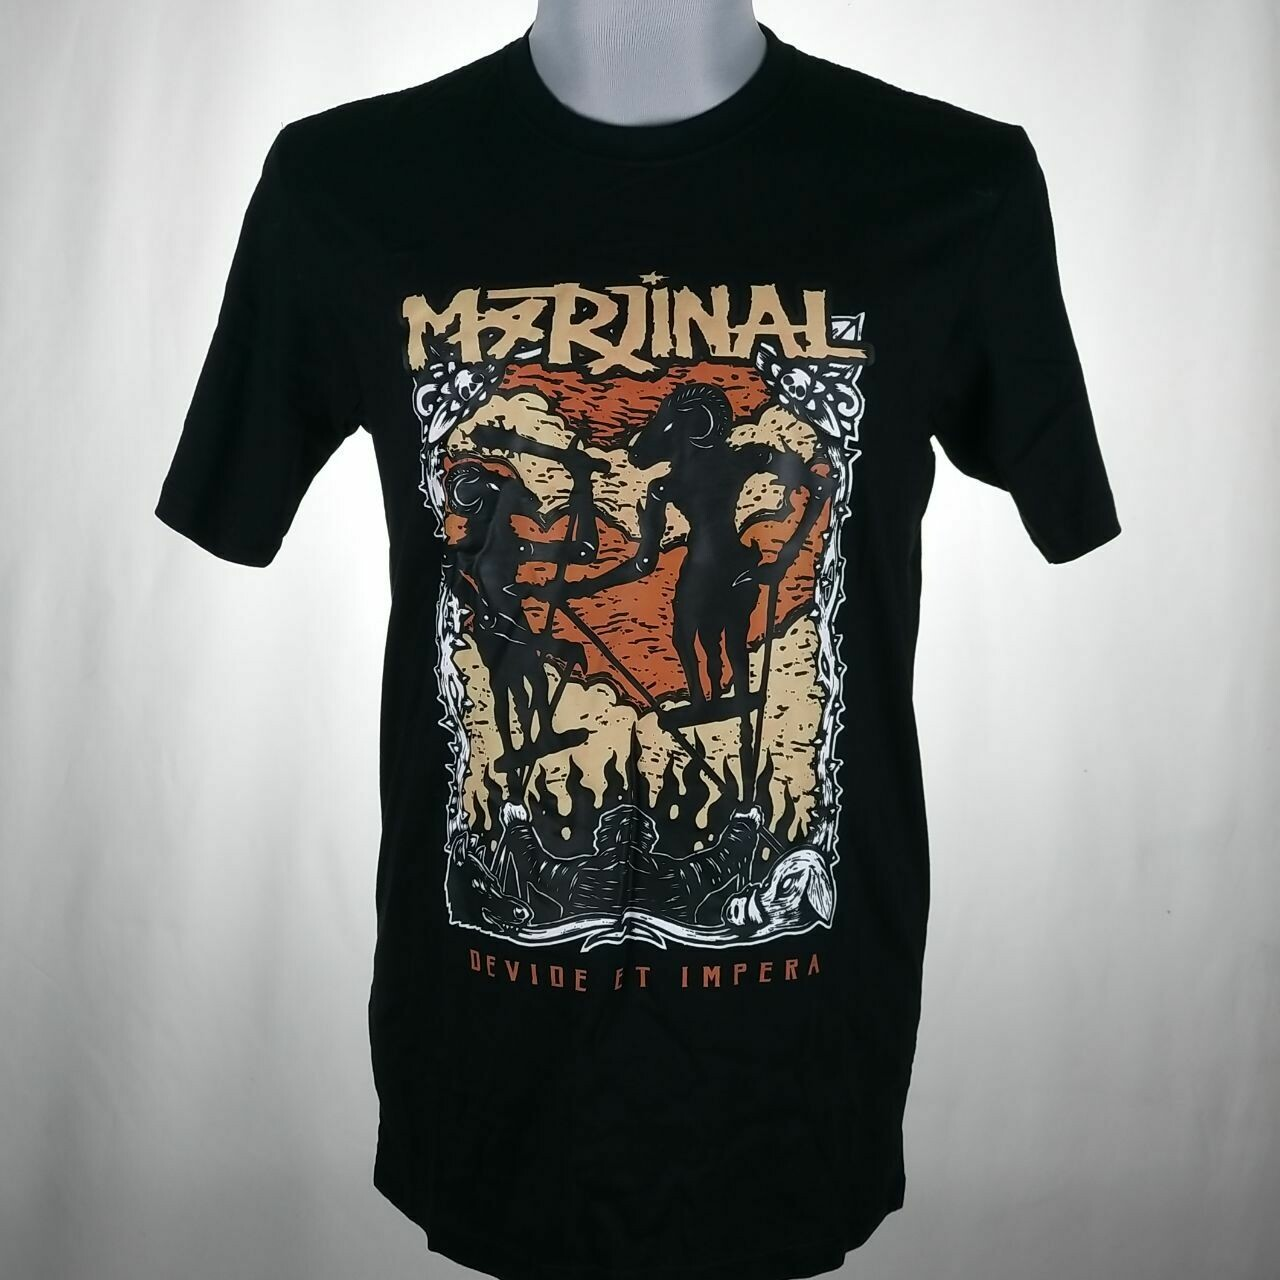 MARJINAL -DEVIDE ET IMPERA (BLACK)